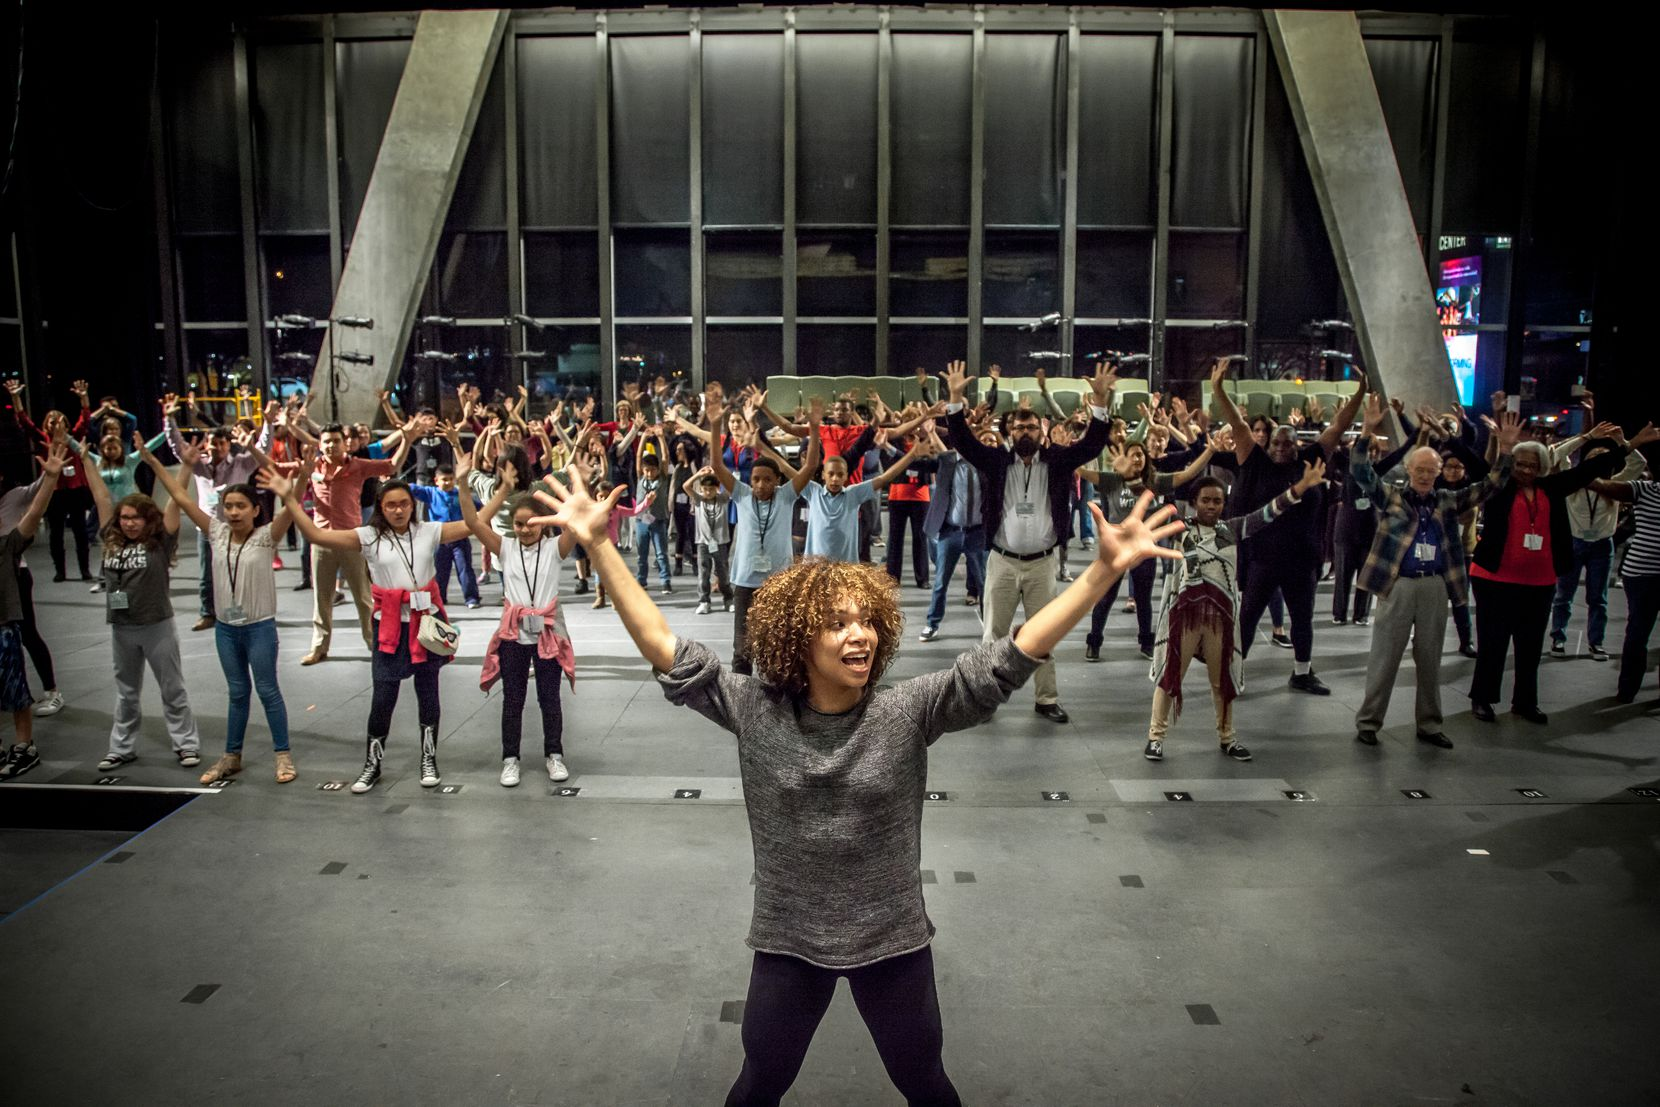 Assistant choreographer Mayte Natalio rehearses with the cast of 'The Tempest,' the launch of Dallas Theater Center's Public Works Dallas program. The show will feature a cast of 200, most of them non-actors from the Dallas community. The show will be presented March 3-5 at the Wyly Theatre in the AT&T Performing Arts Center in Dallas.